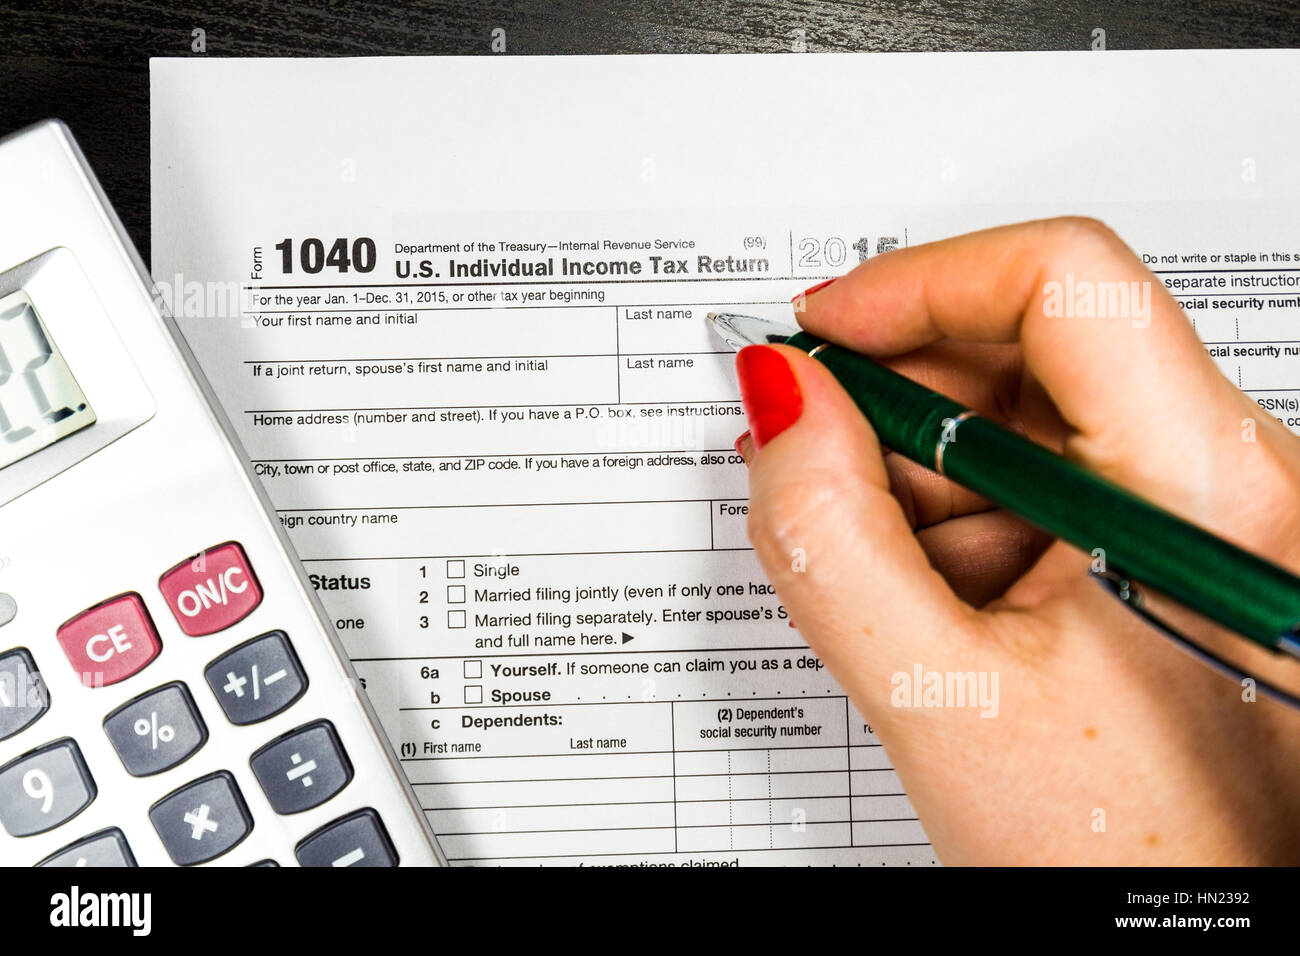 form 1040 calculator  Business woman fills the tax form 12 with pen and ...